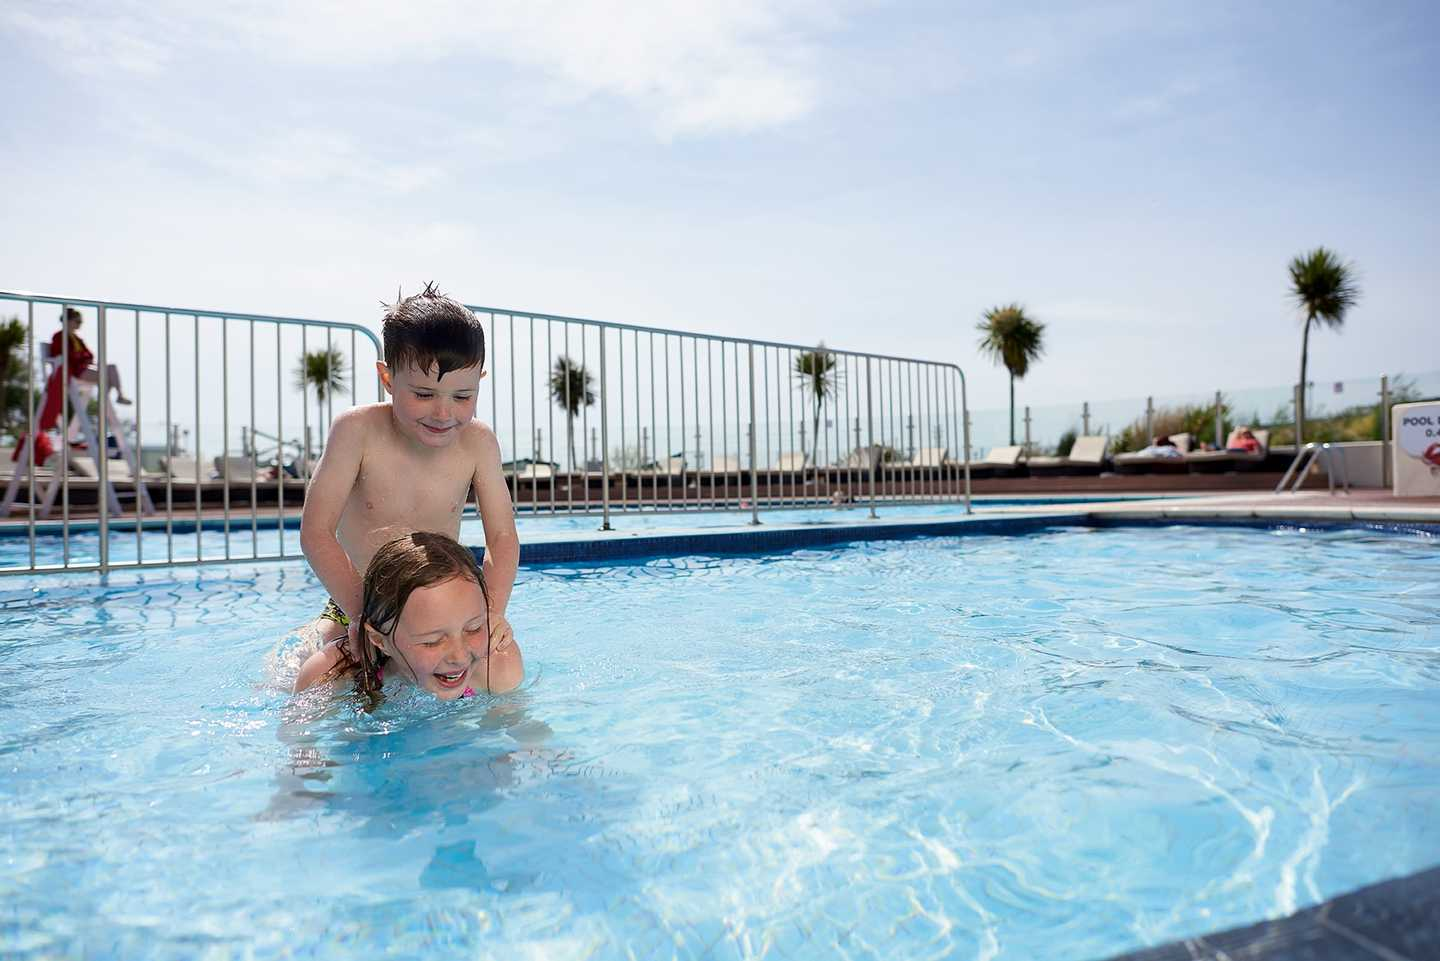 Guests playing in the outdoor pool at Littlesea Holiday Park